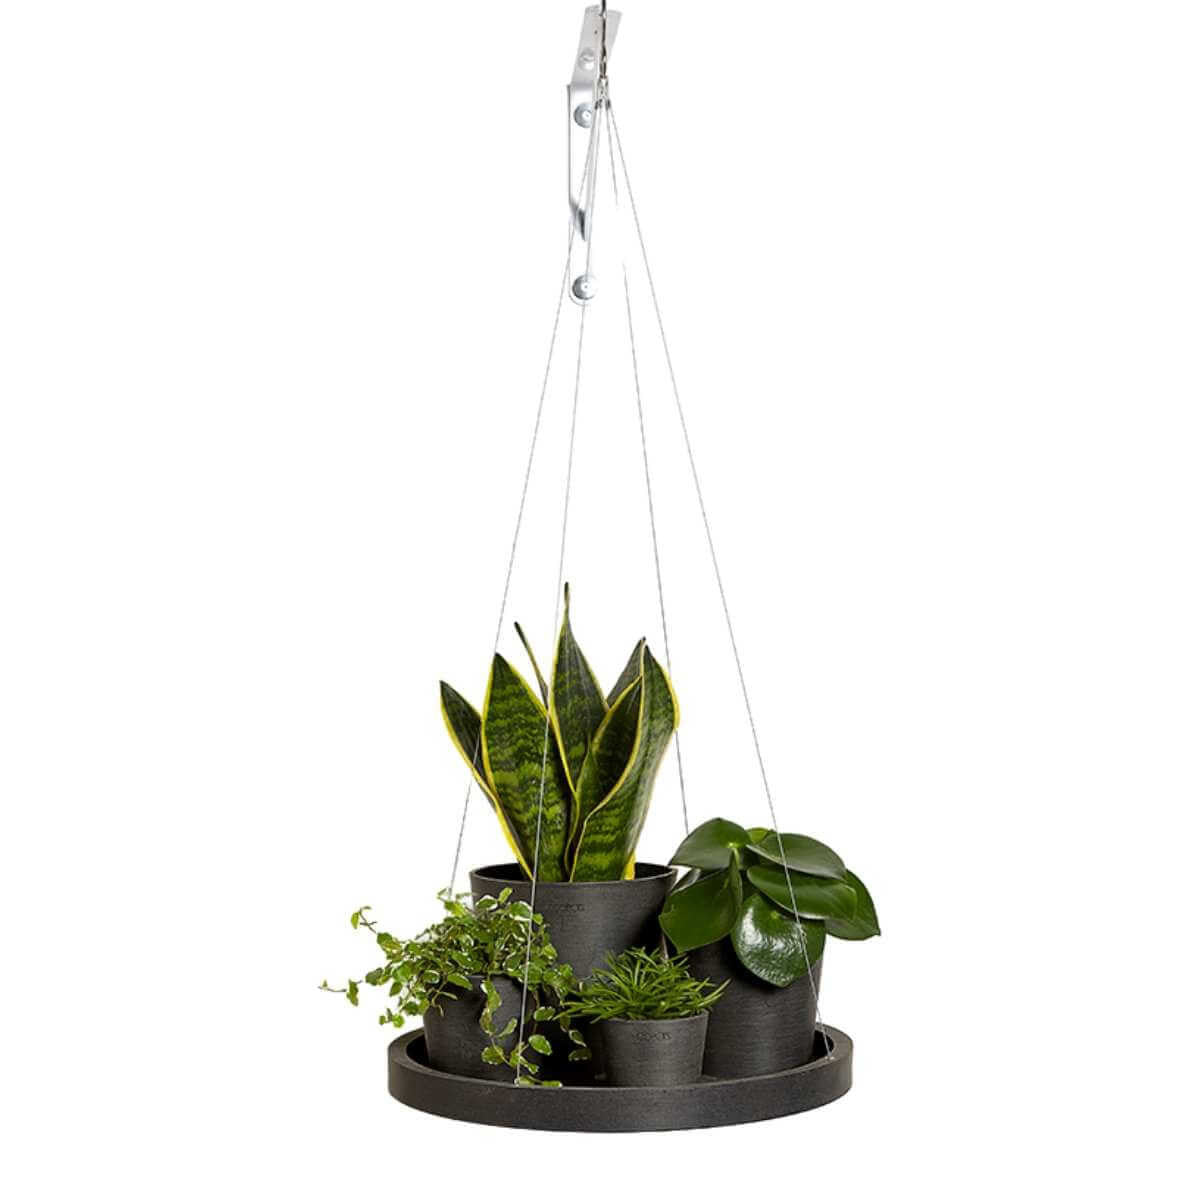 Hanging saucer with plants